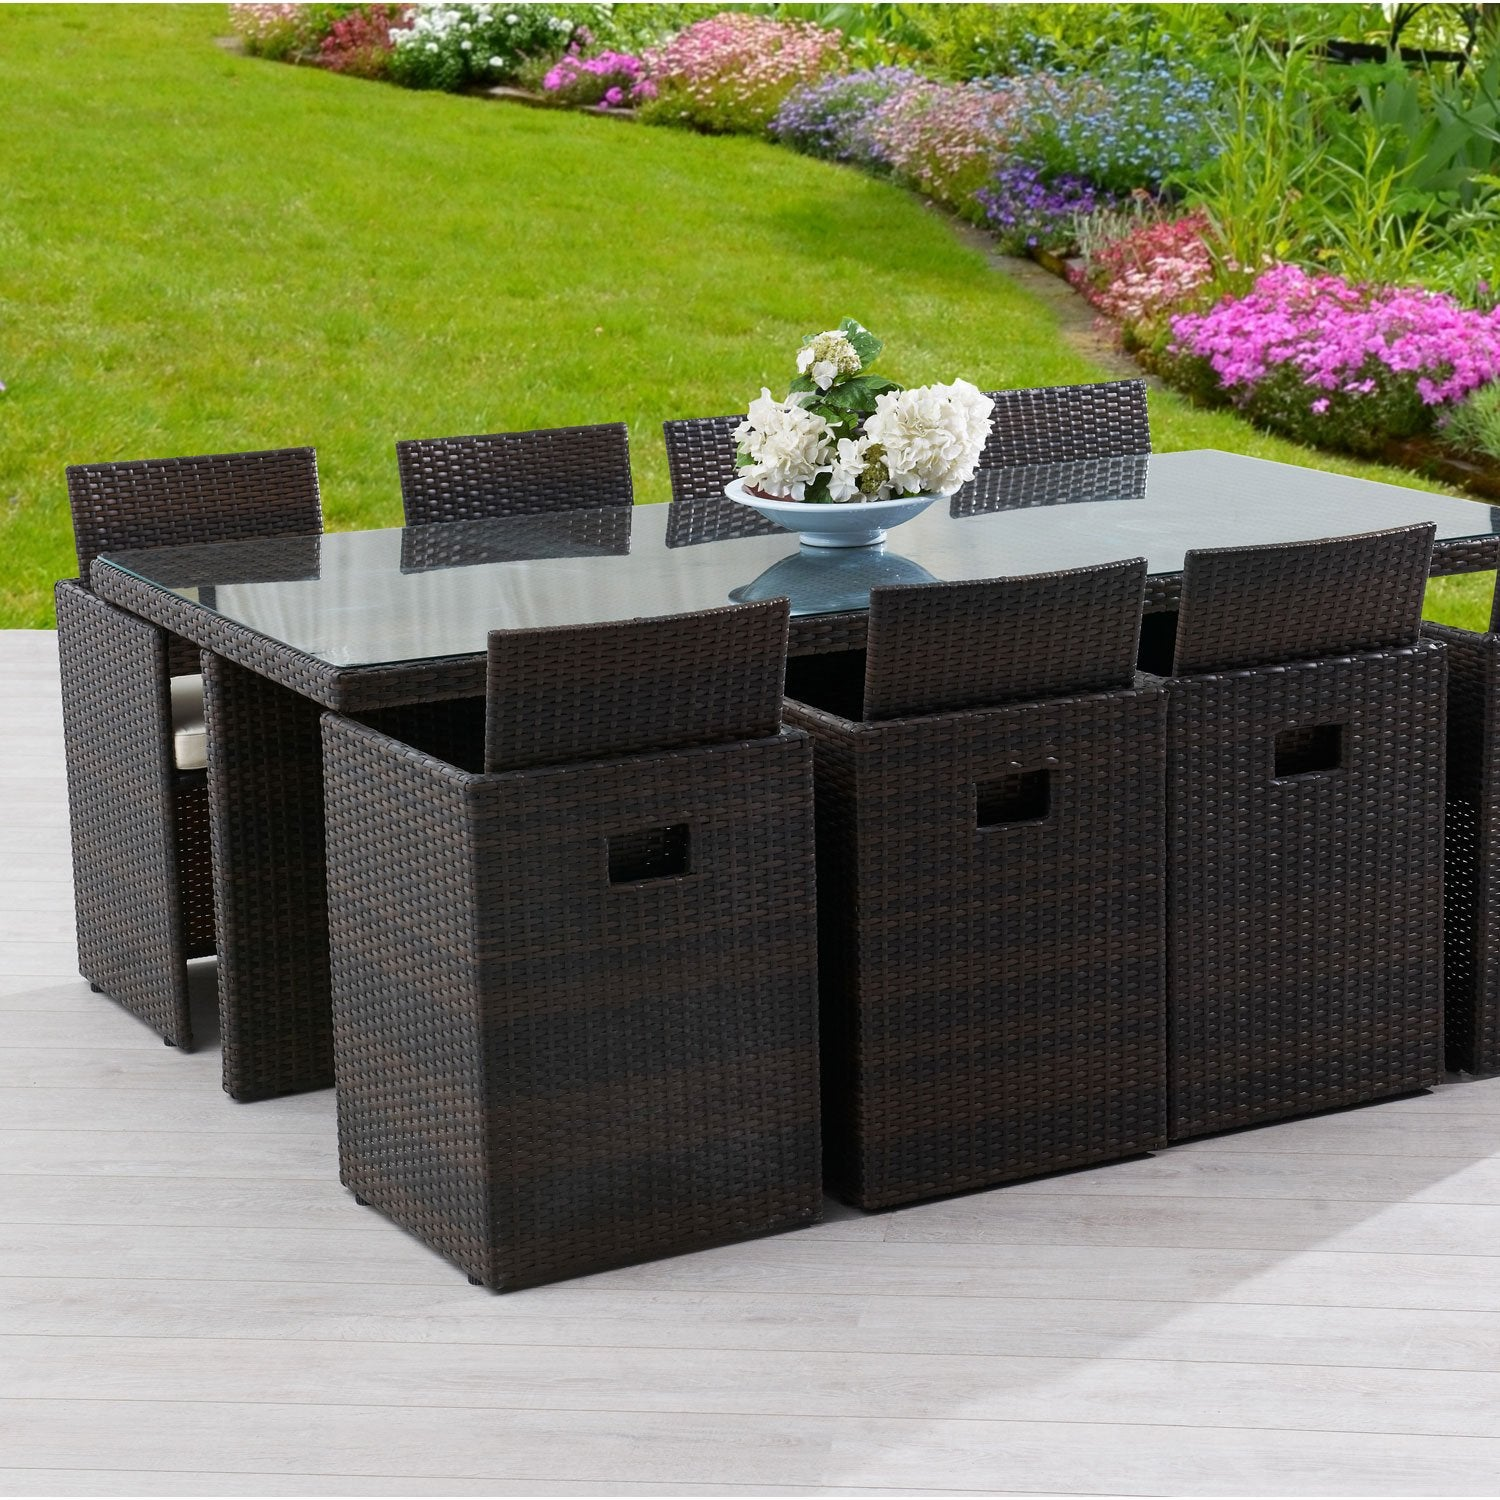 Salon de jardin encastrable r sine tress e marron 1 table for Salon de jardin en resine tressee solde